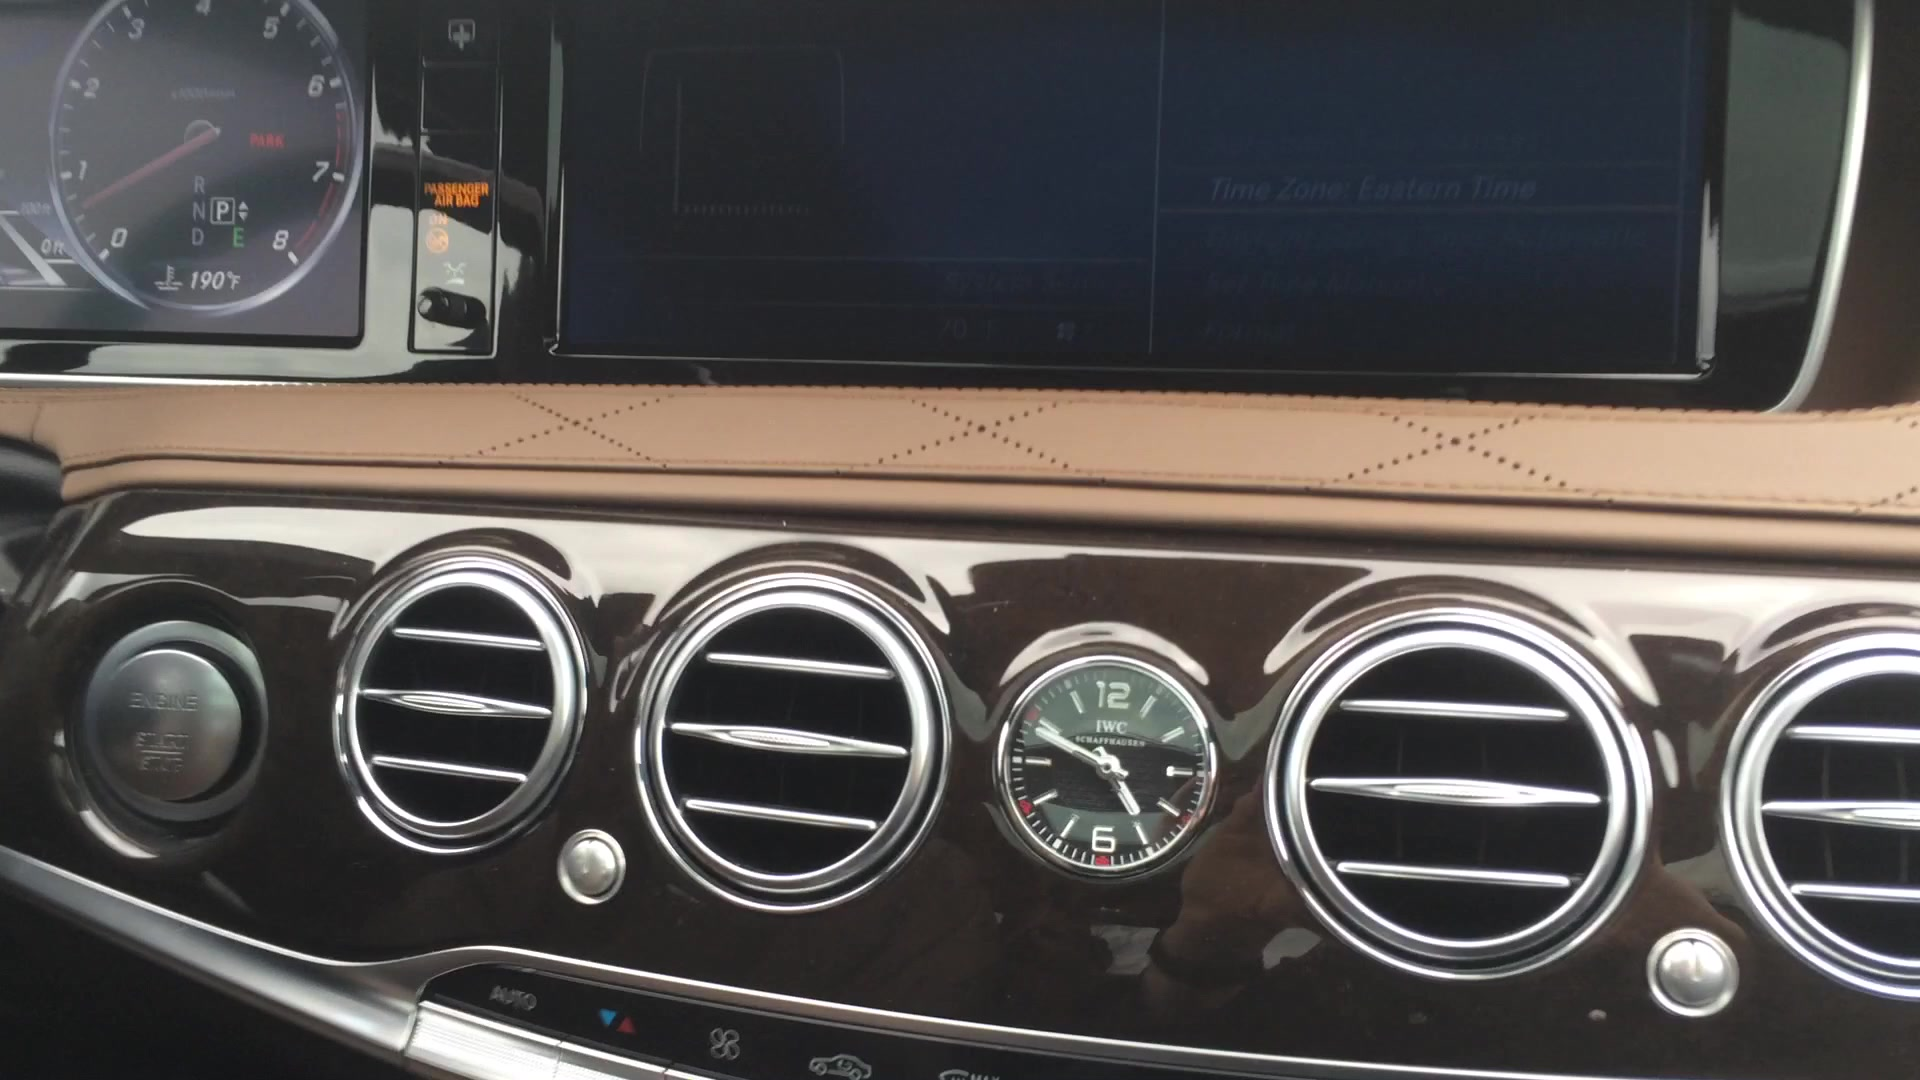 2016 Mercedes-Maybach S600 IWC Schaffhausen Clock | Autoblog Short Cuts